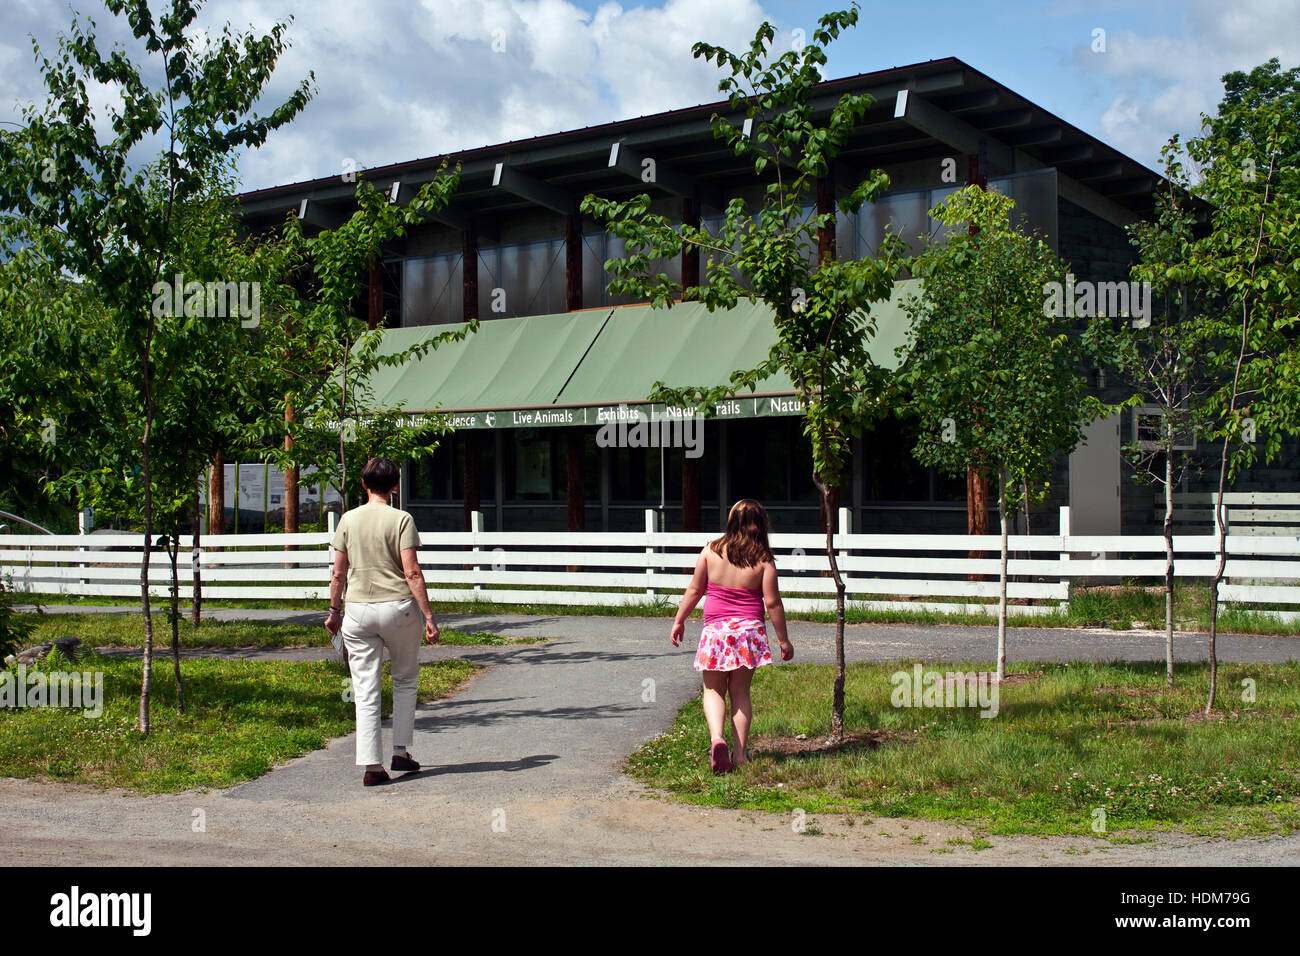 Vermont Institute of Natural Sciences, Quechee, Vermont, USA. A woman and child approaching the main VINS building. - Stock Image